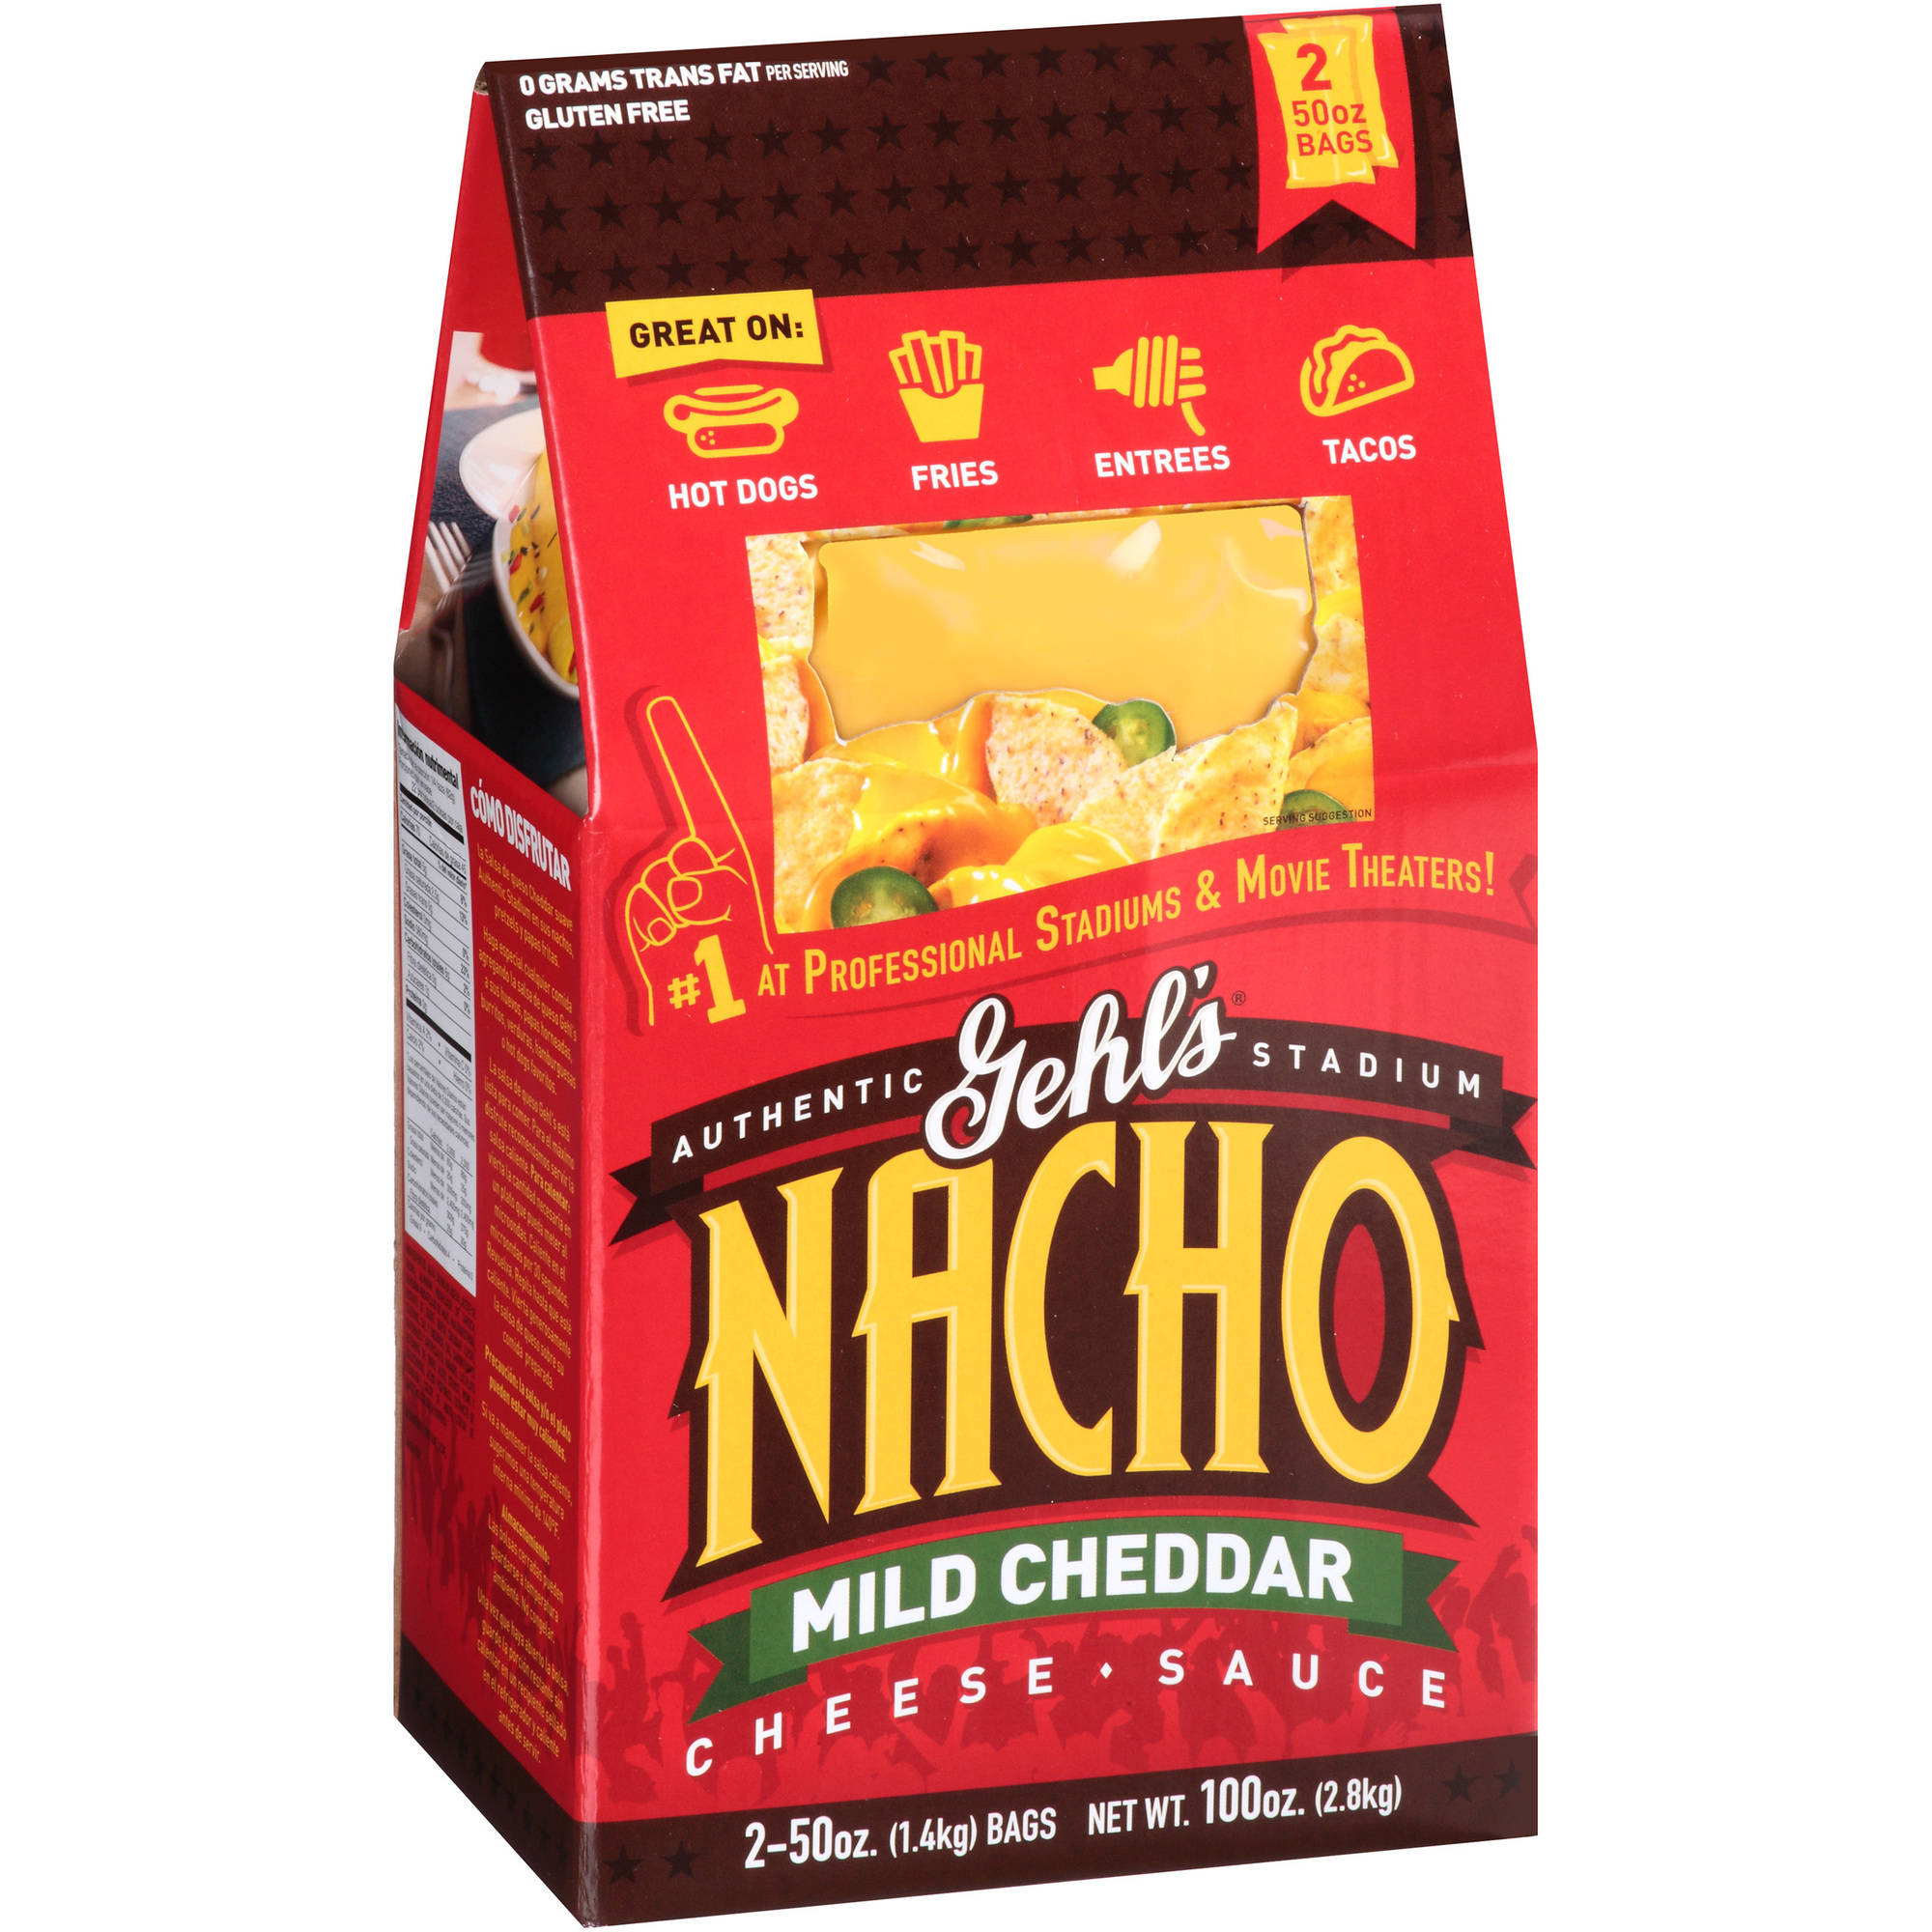 Gehl's Authentic Stadium Nacho Mild Cheddar Cheese Sauce, 50 oz, 2 count by GEHL GUERNSEY FARMS INC